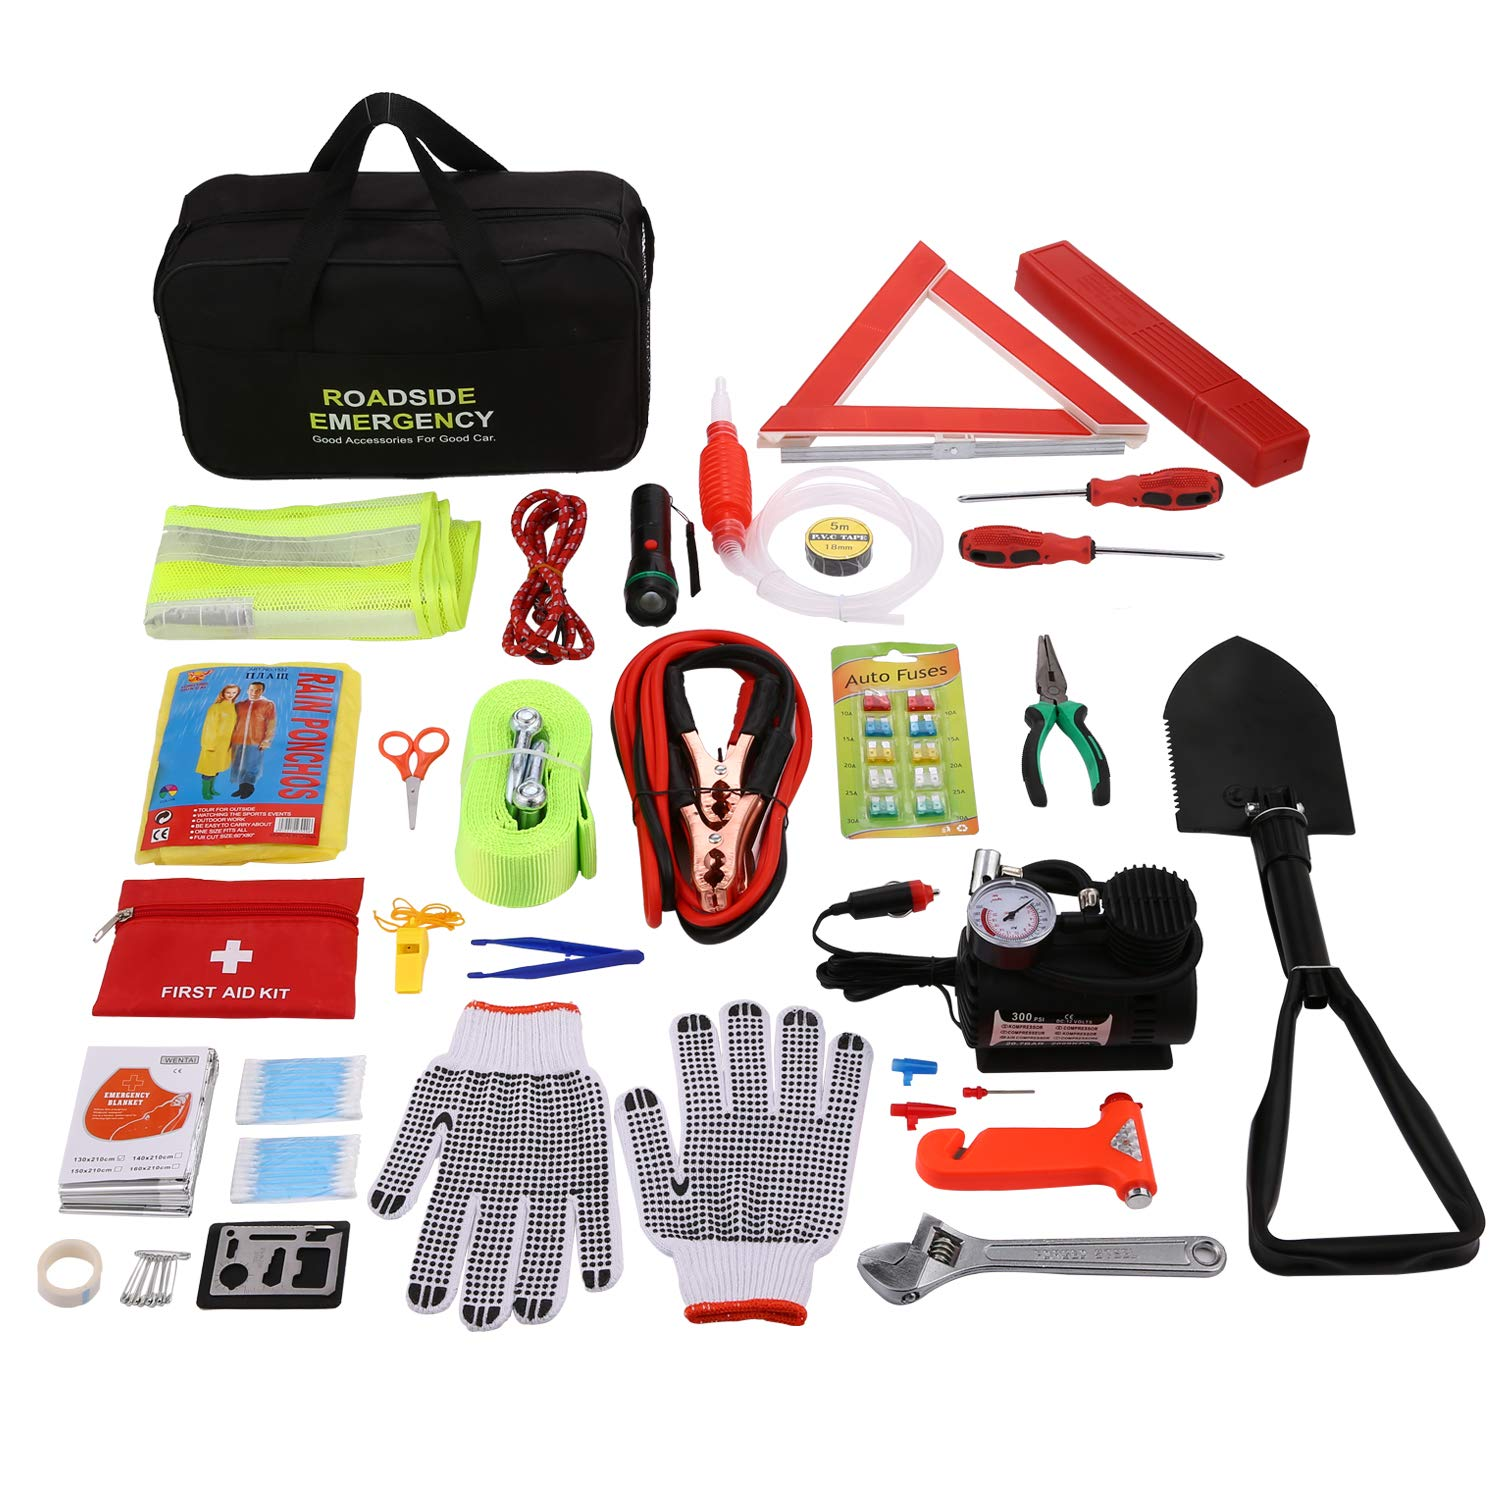 COOCHEER Auto Emergency Kit,Multifunctional Roadside Assistance 99-in-1 Car Safety Kit with Jumper Cables,Folding Military Shovel,Air Compressor,Tow Rope,Triangle,Flashlight,Tire Pressure Gauges etc.